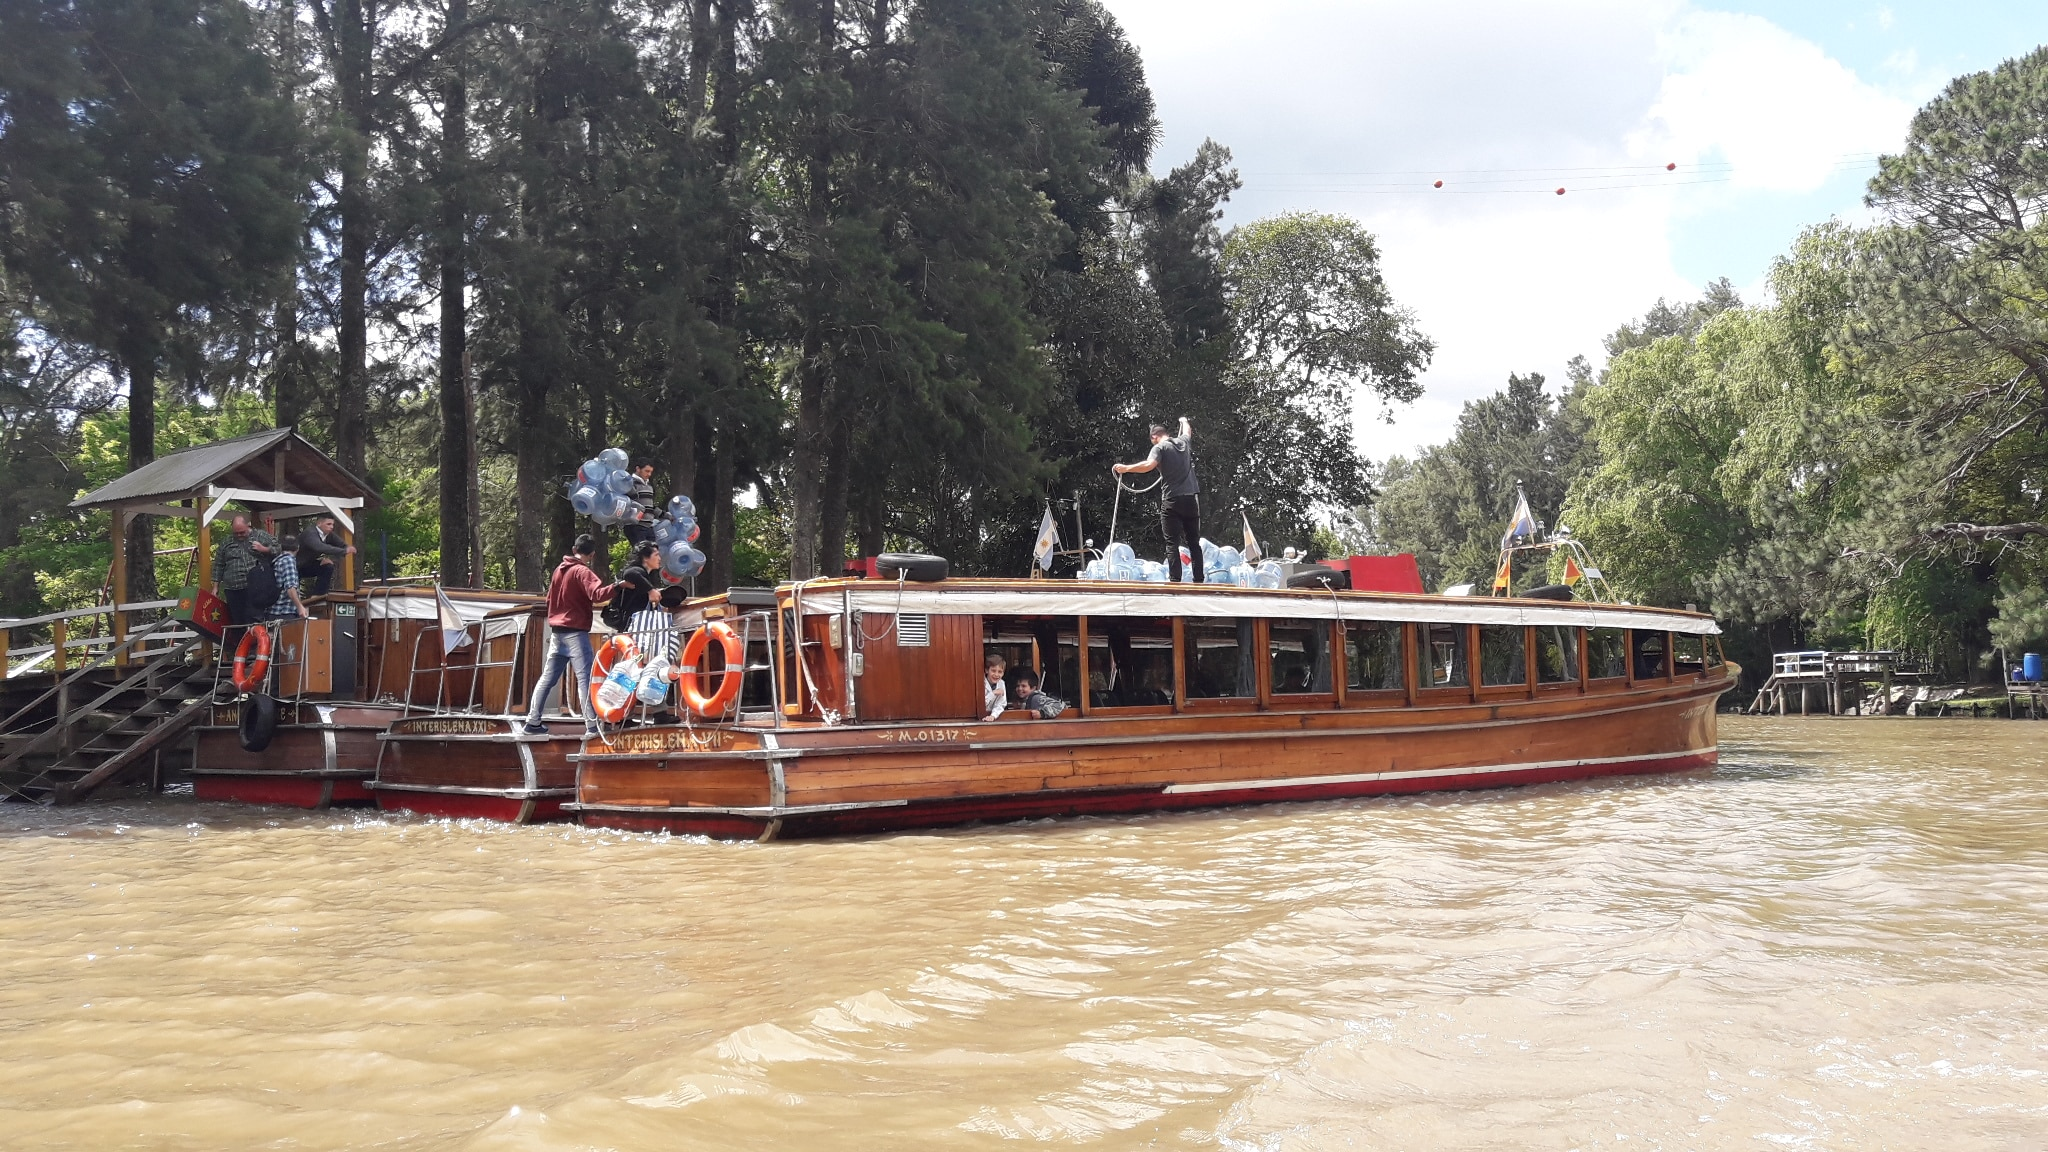 Tigre and The Delta - Buenos Aires Cruising Day Tour 1